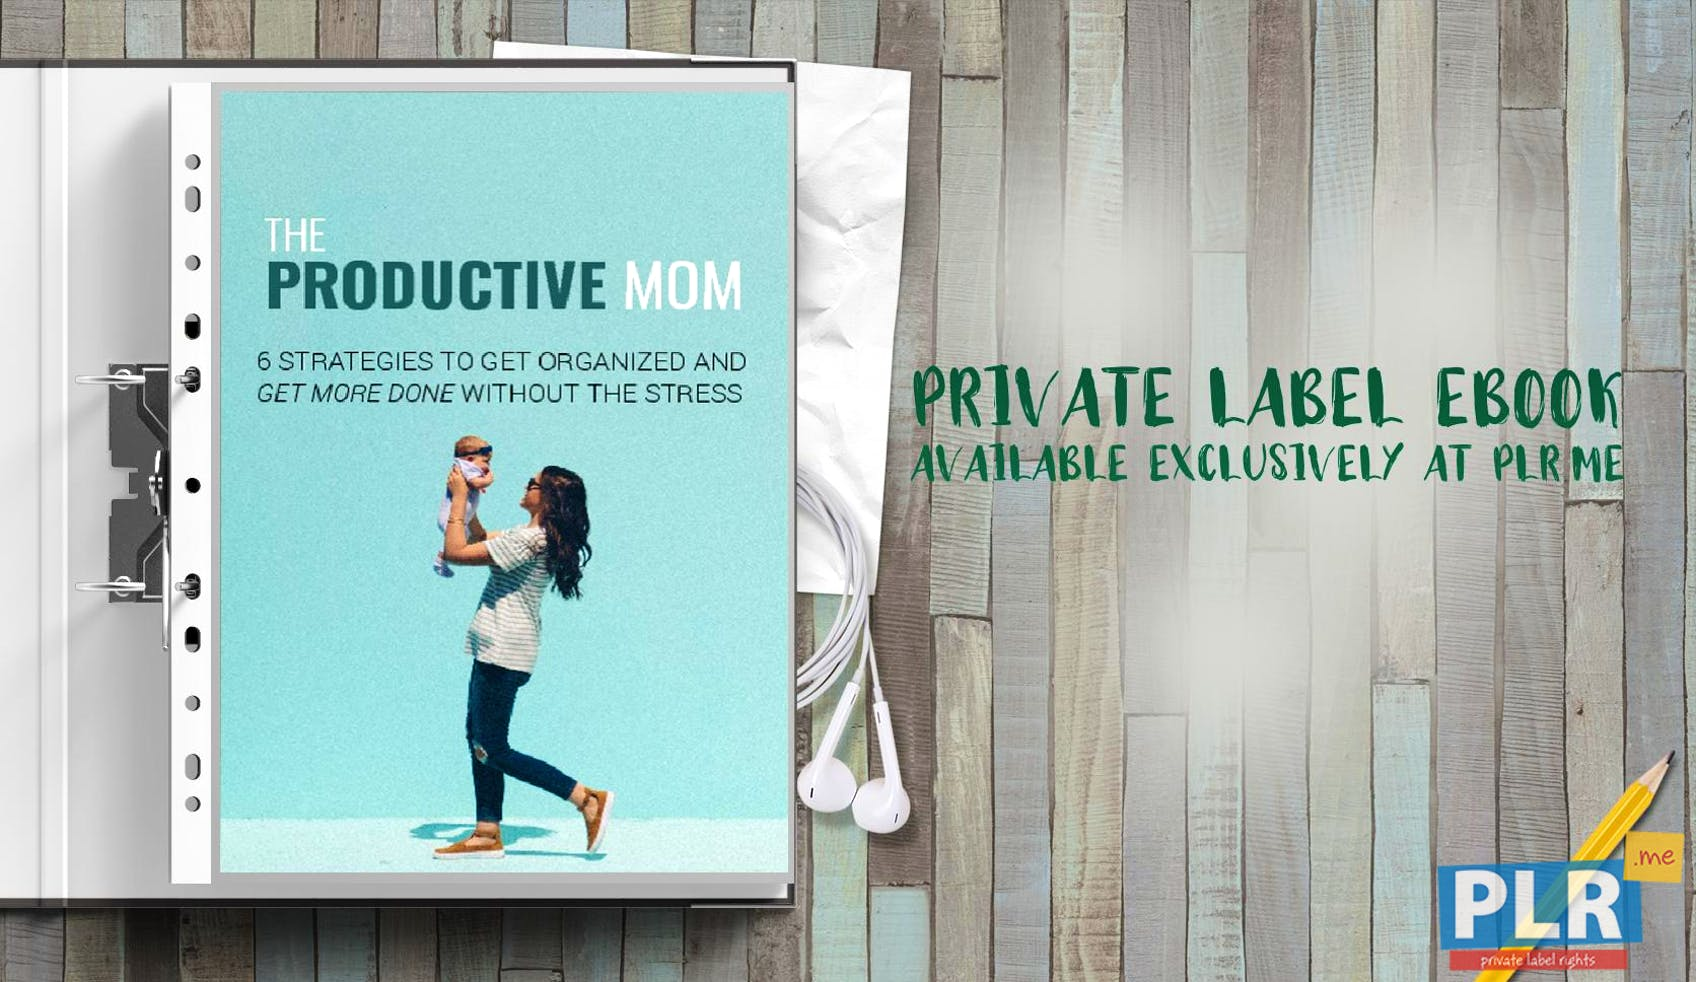 The Productive Mom